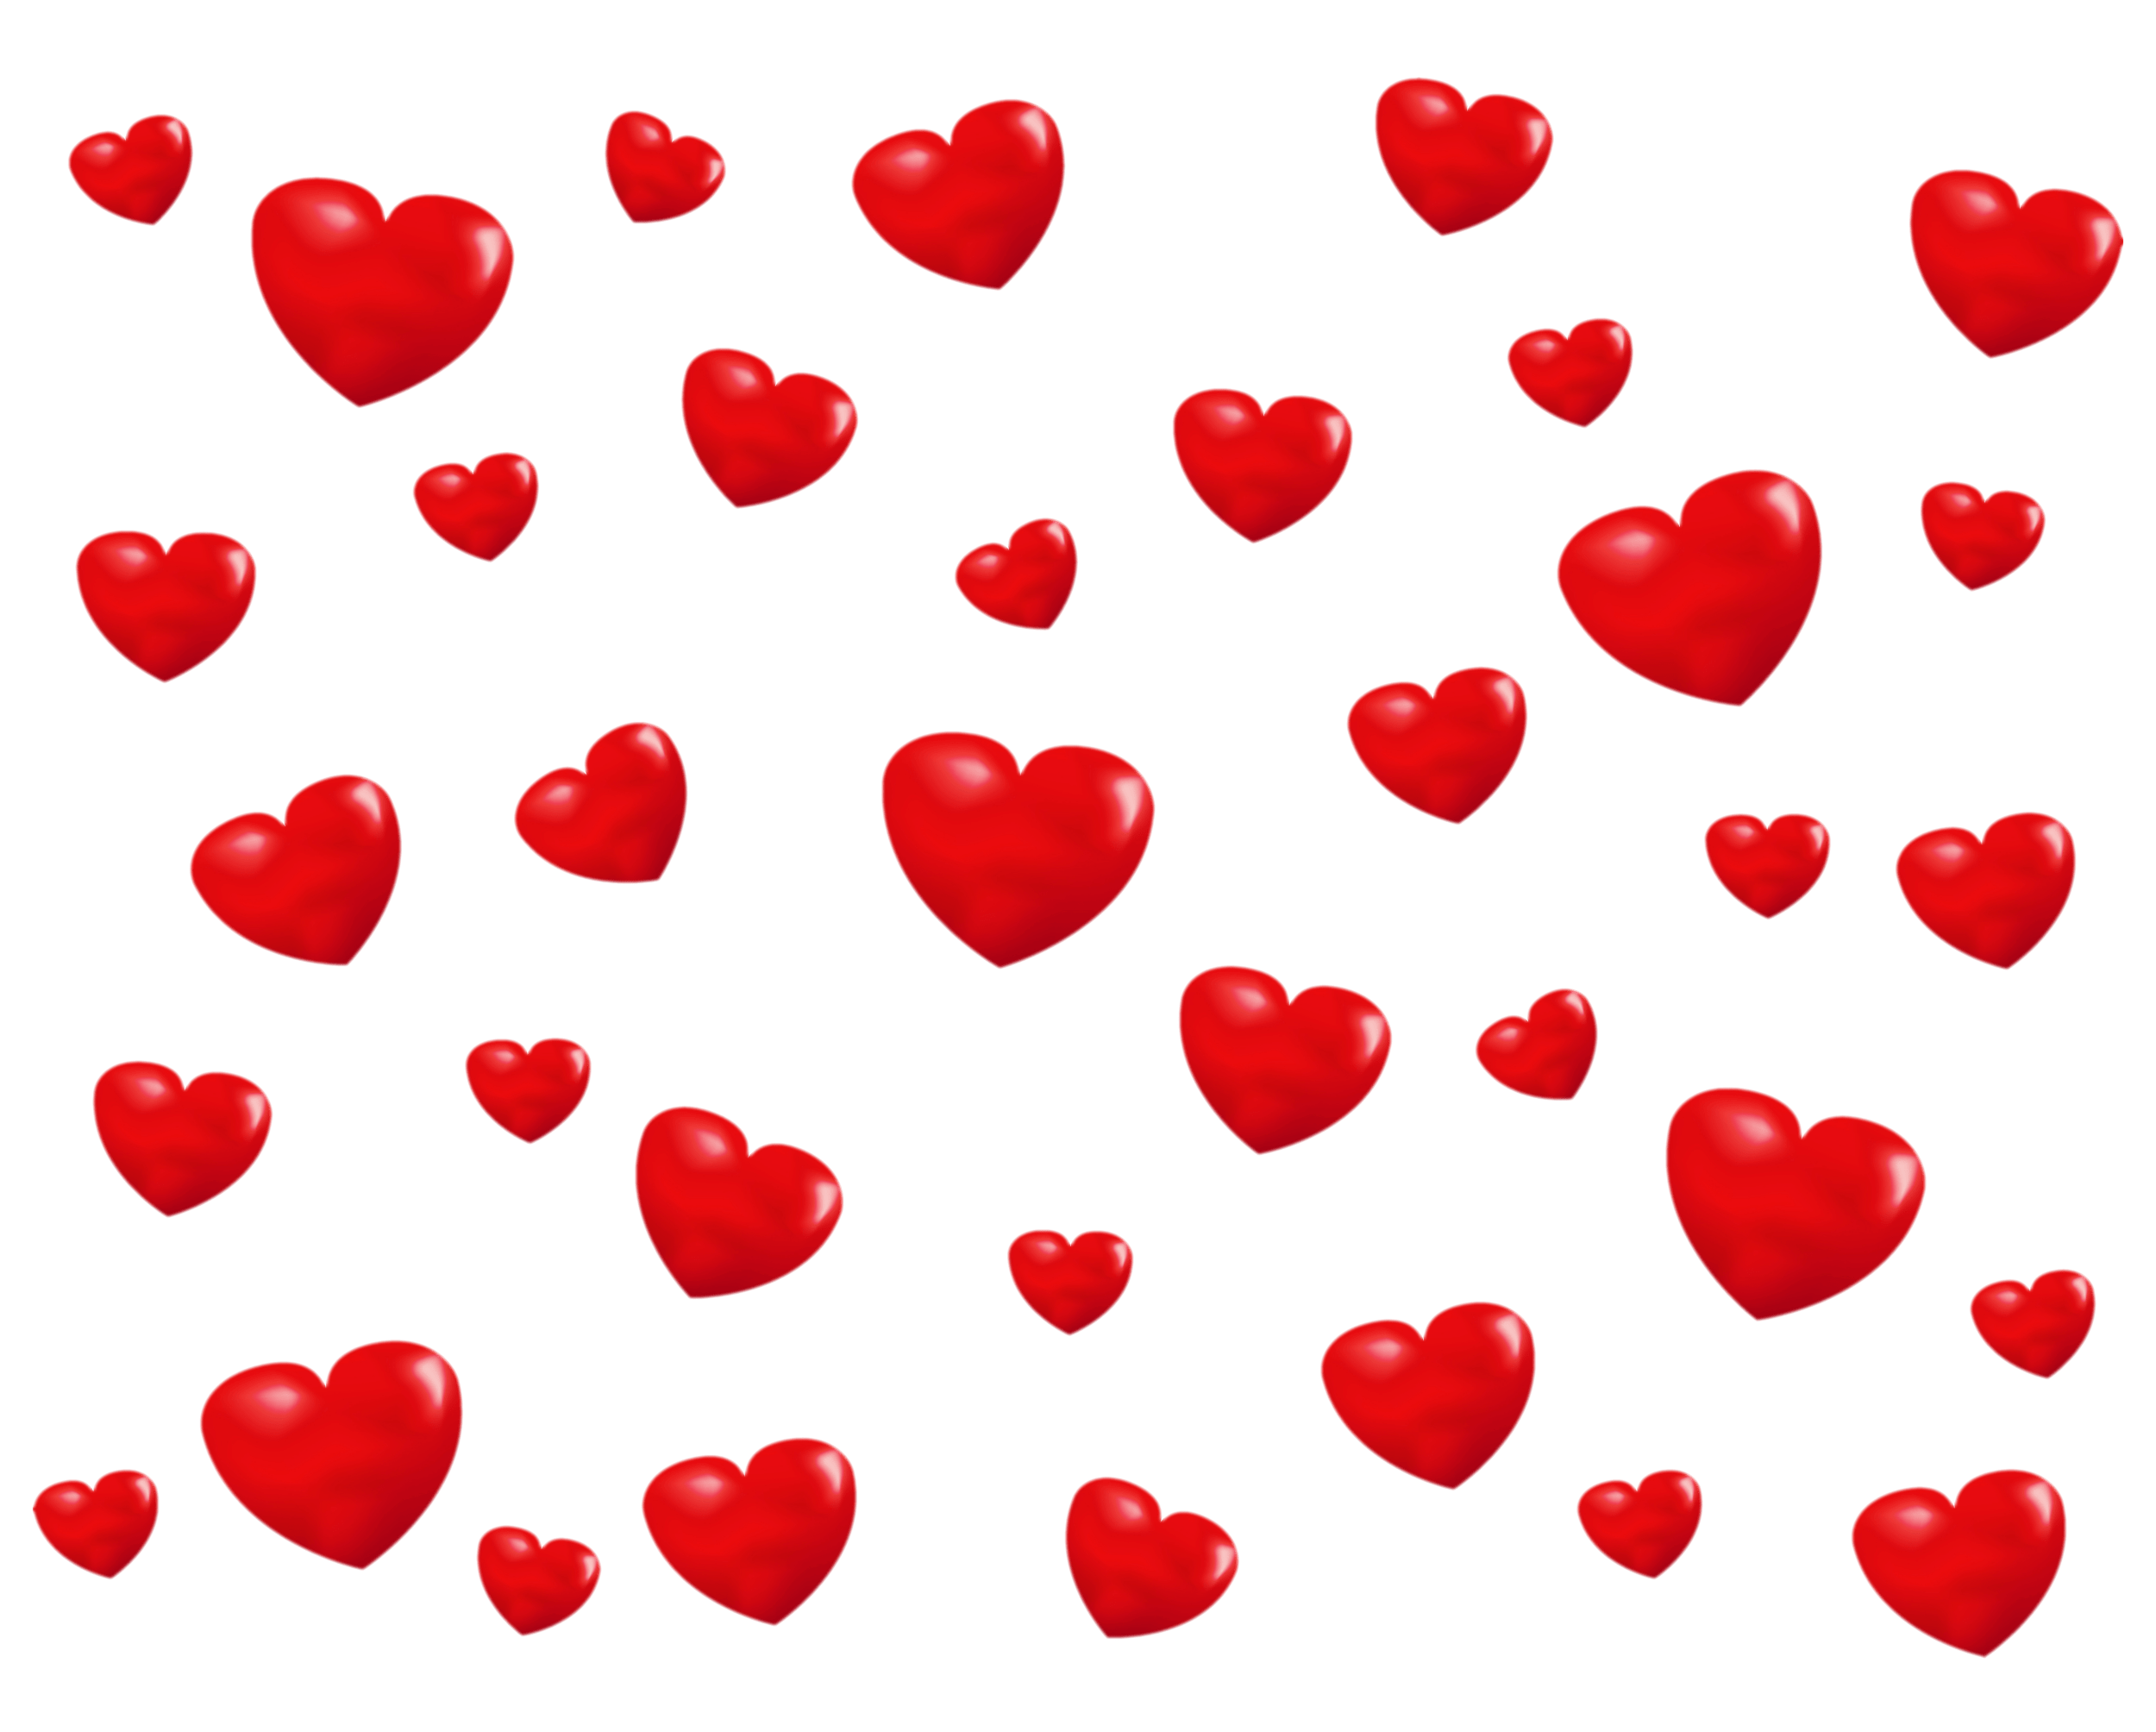 Falling hearts png. Little overlay photos